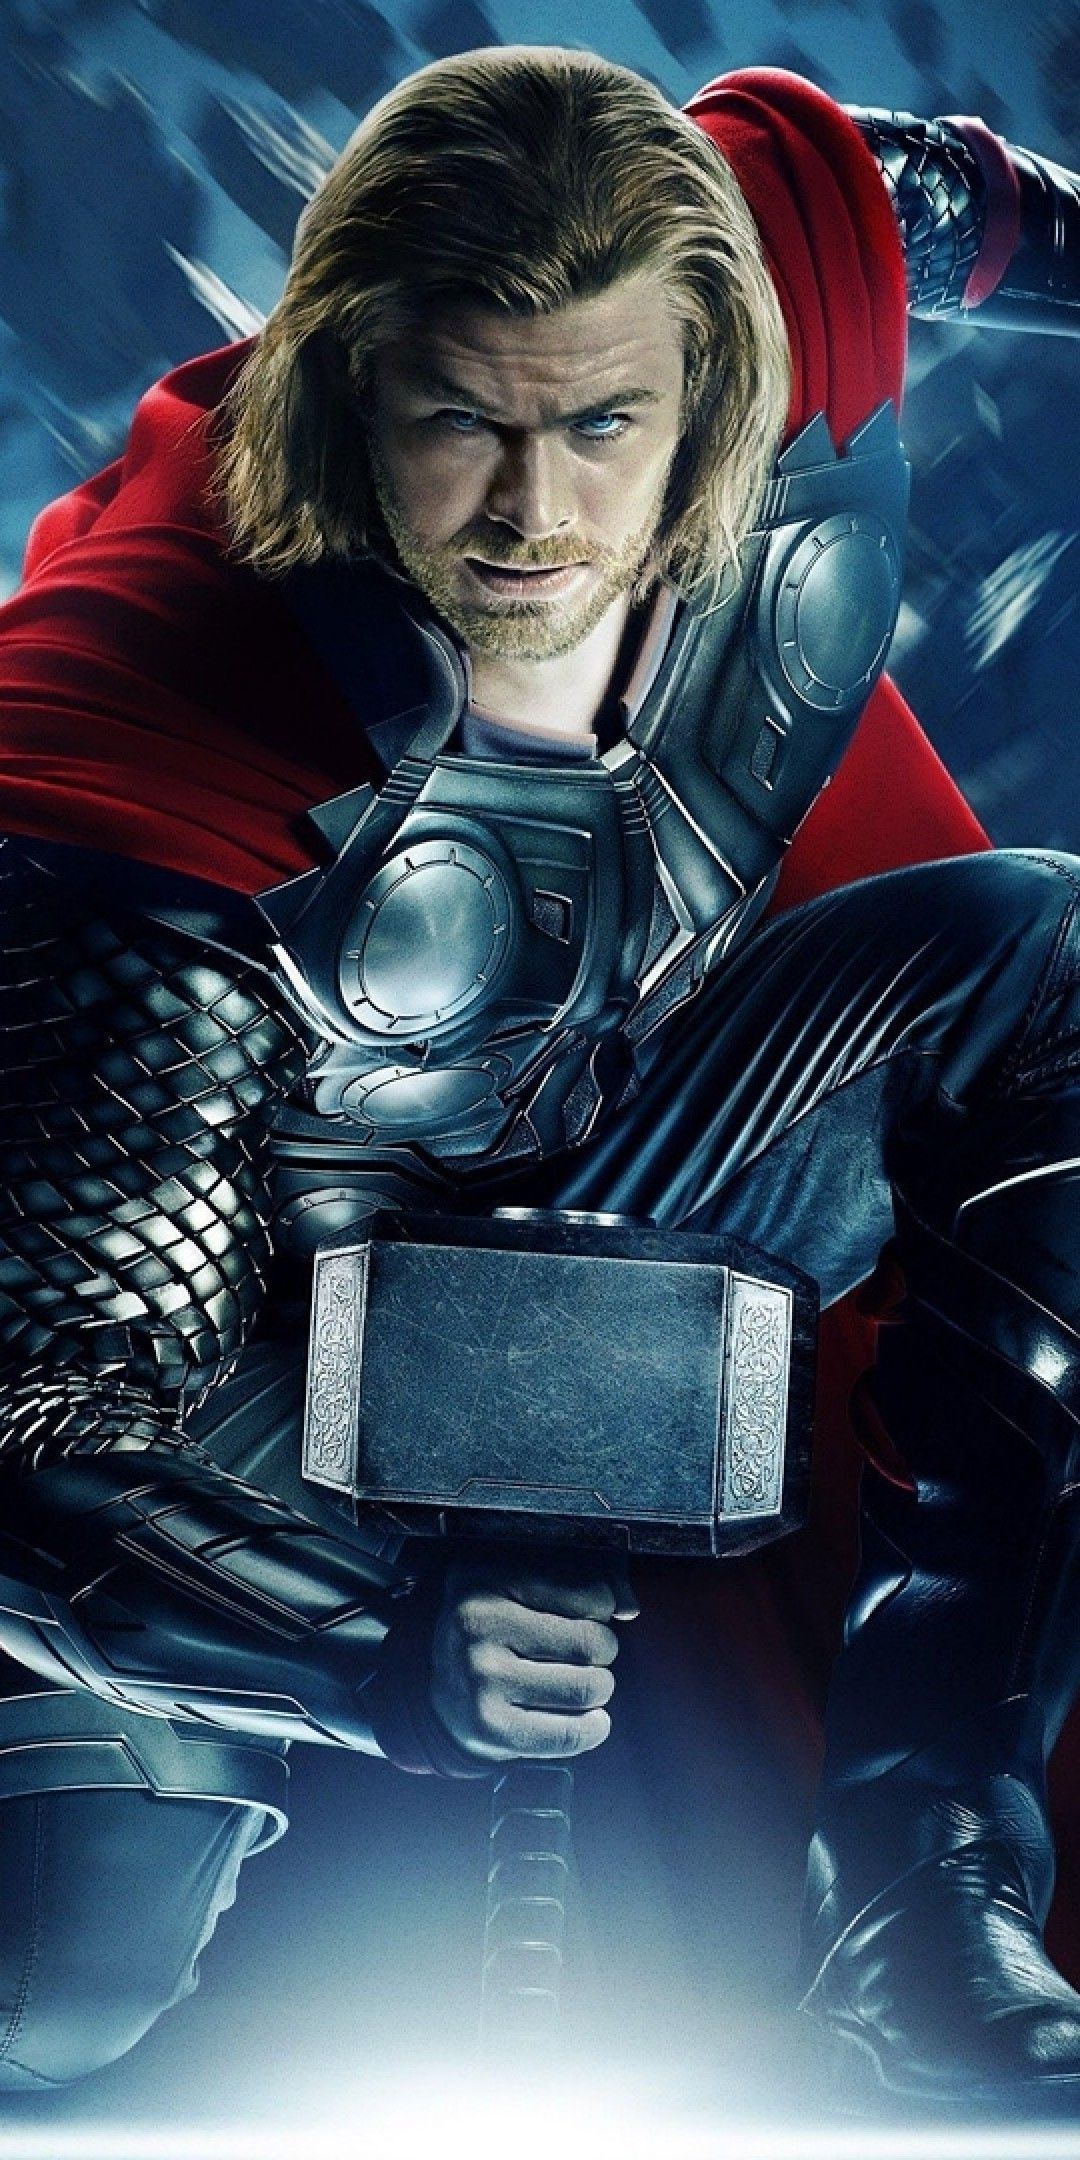 Download 1080x2160 Avengers, Thor, Armored, Hammer, Cape Wallpapers for Huawei Mate 10